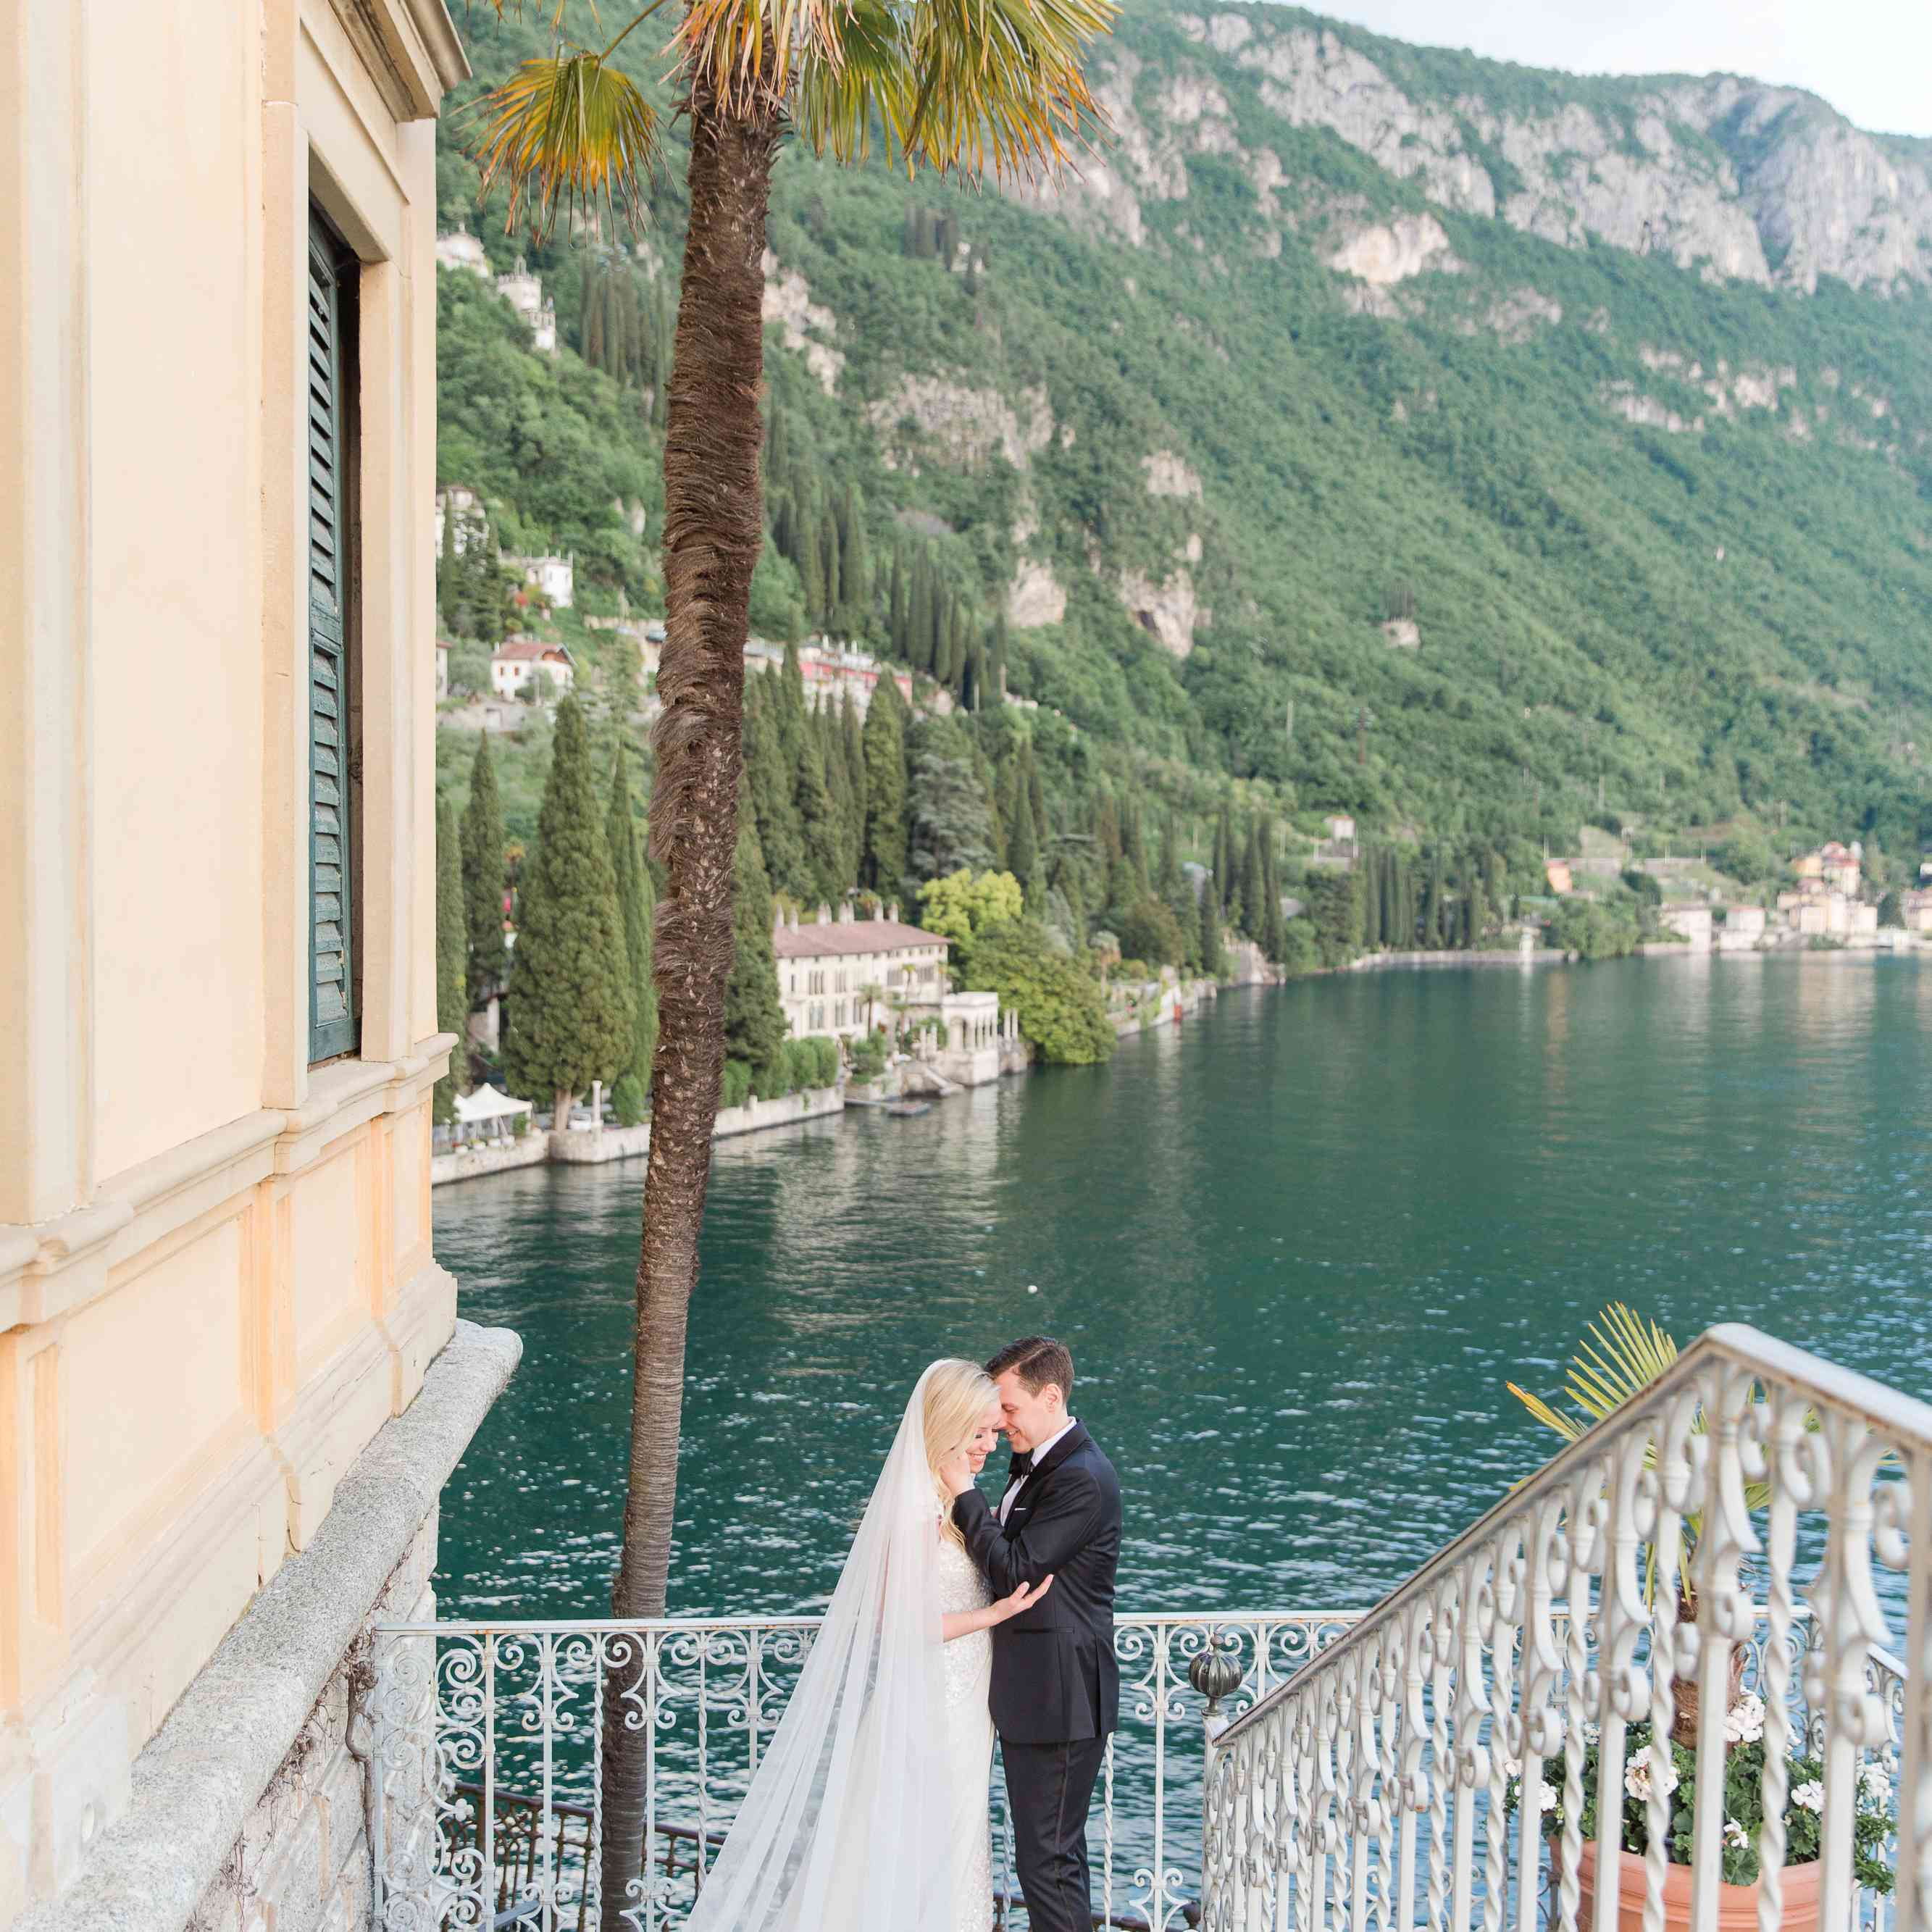 <p>Bride and groom in Italy</p><br><br>